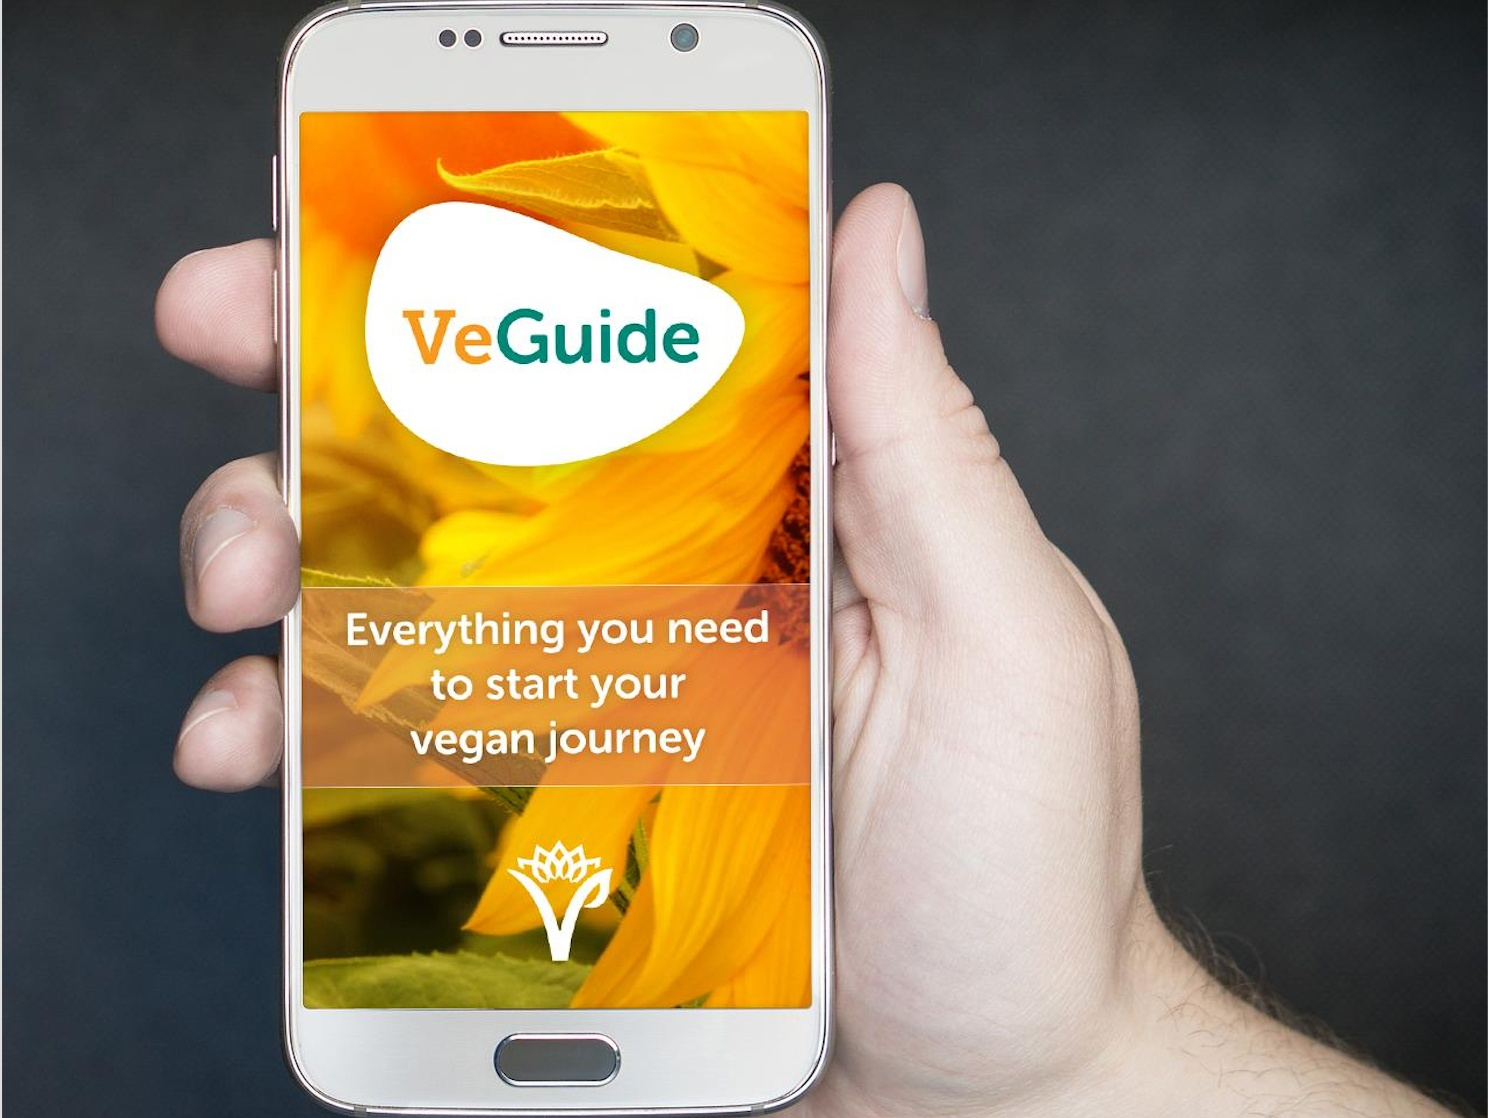 Free vegan app VeGuide from The Vegan Society